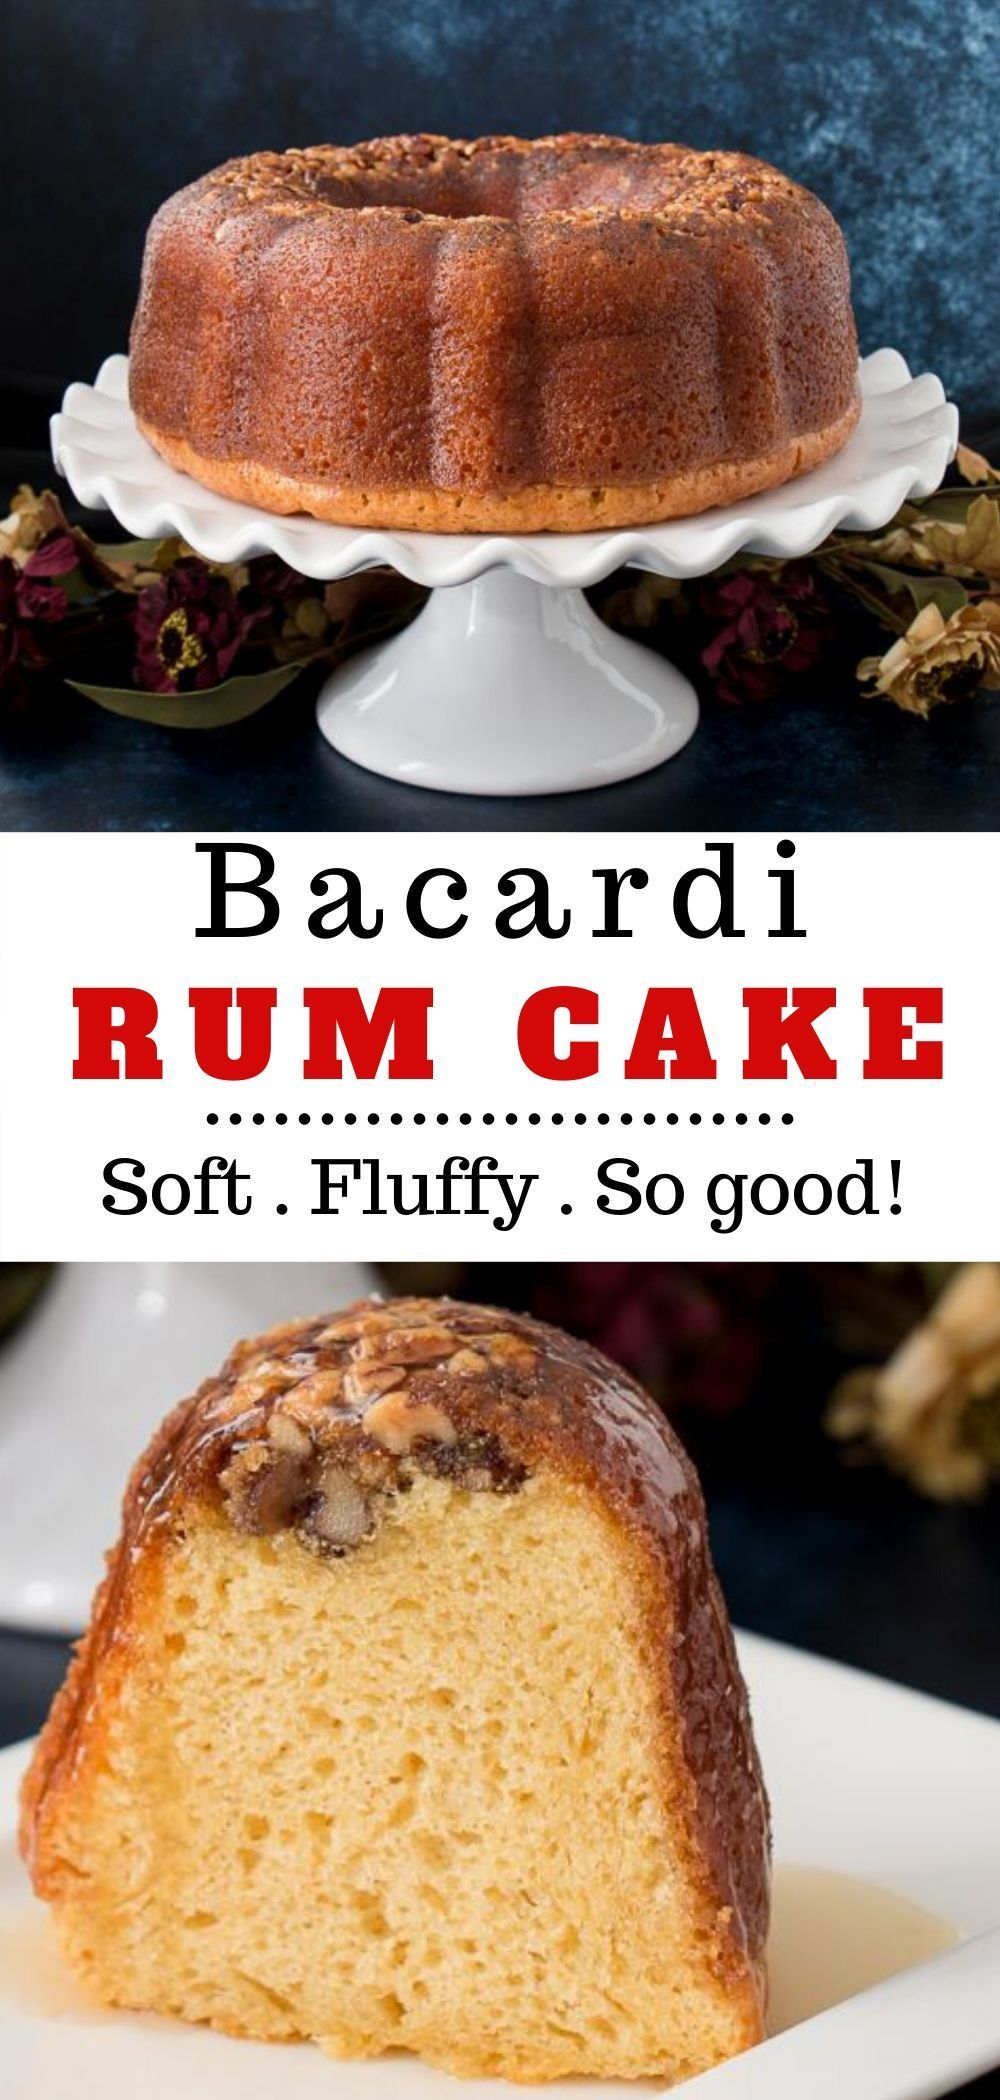 Photo of Bacardi Rum Cake